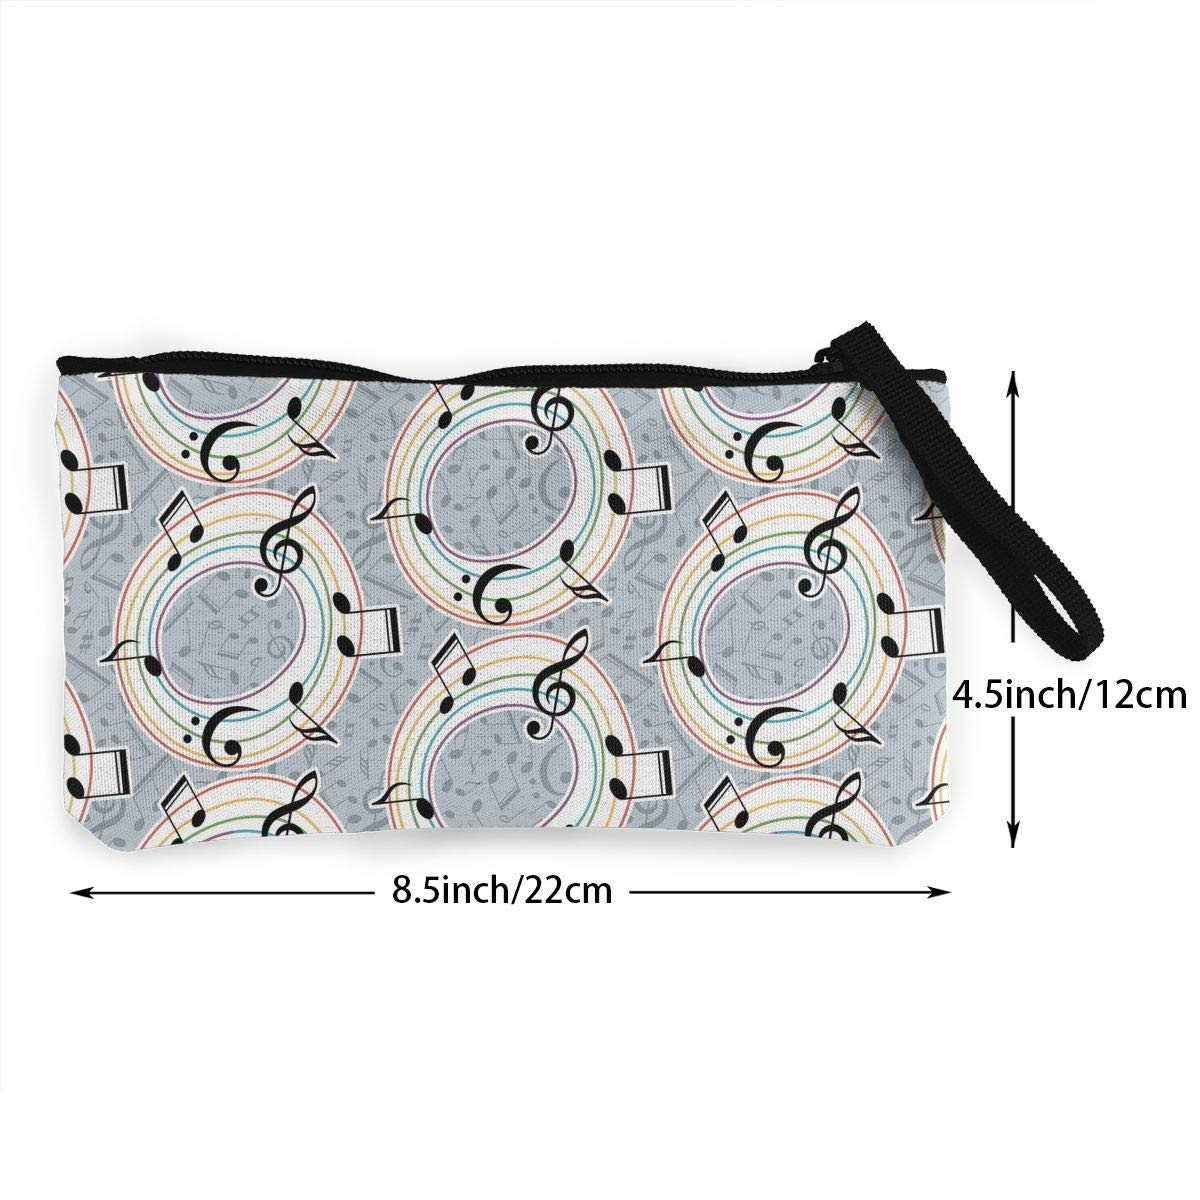 Zipper Small Purse Wallets Womens Canvas Coin Purse Cellphone Clutch Purse With Wrist Strap Musical With Notes Pattern